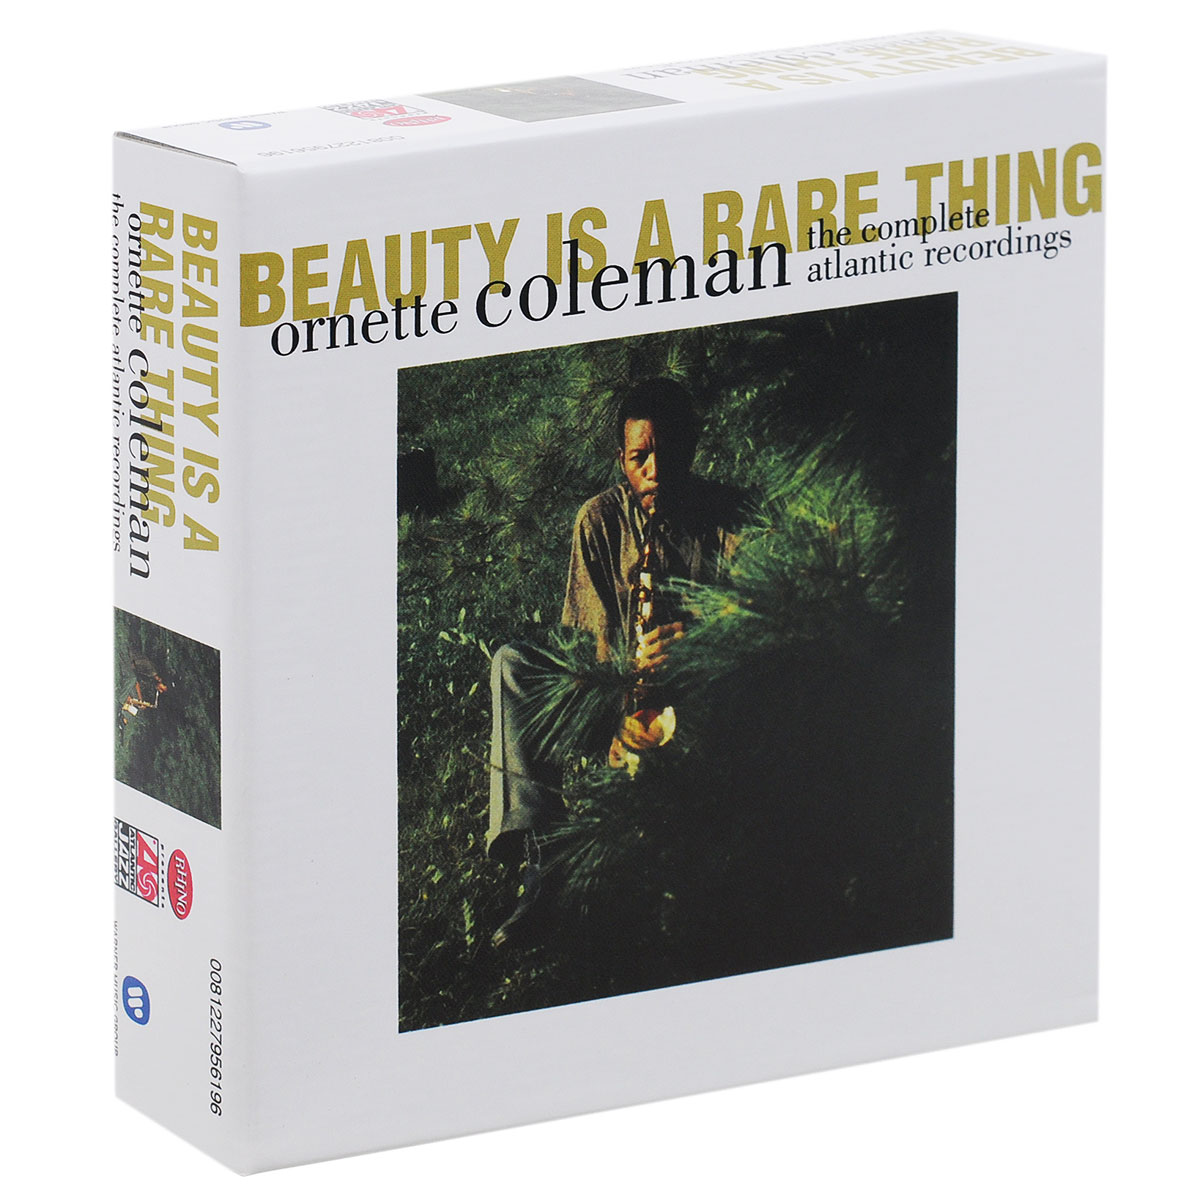 Ornette Coleman. Beauty Is A Rare Thing. The Complete Atlantic Recordings (6 CD)